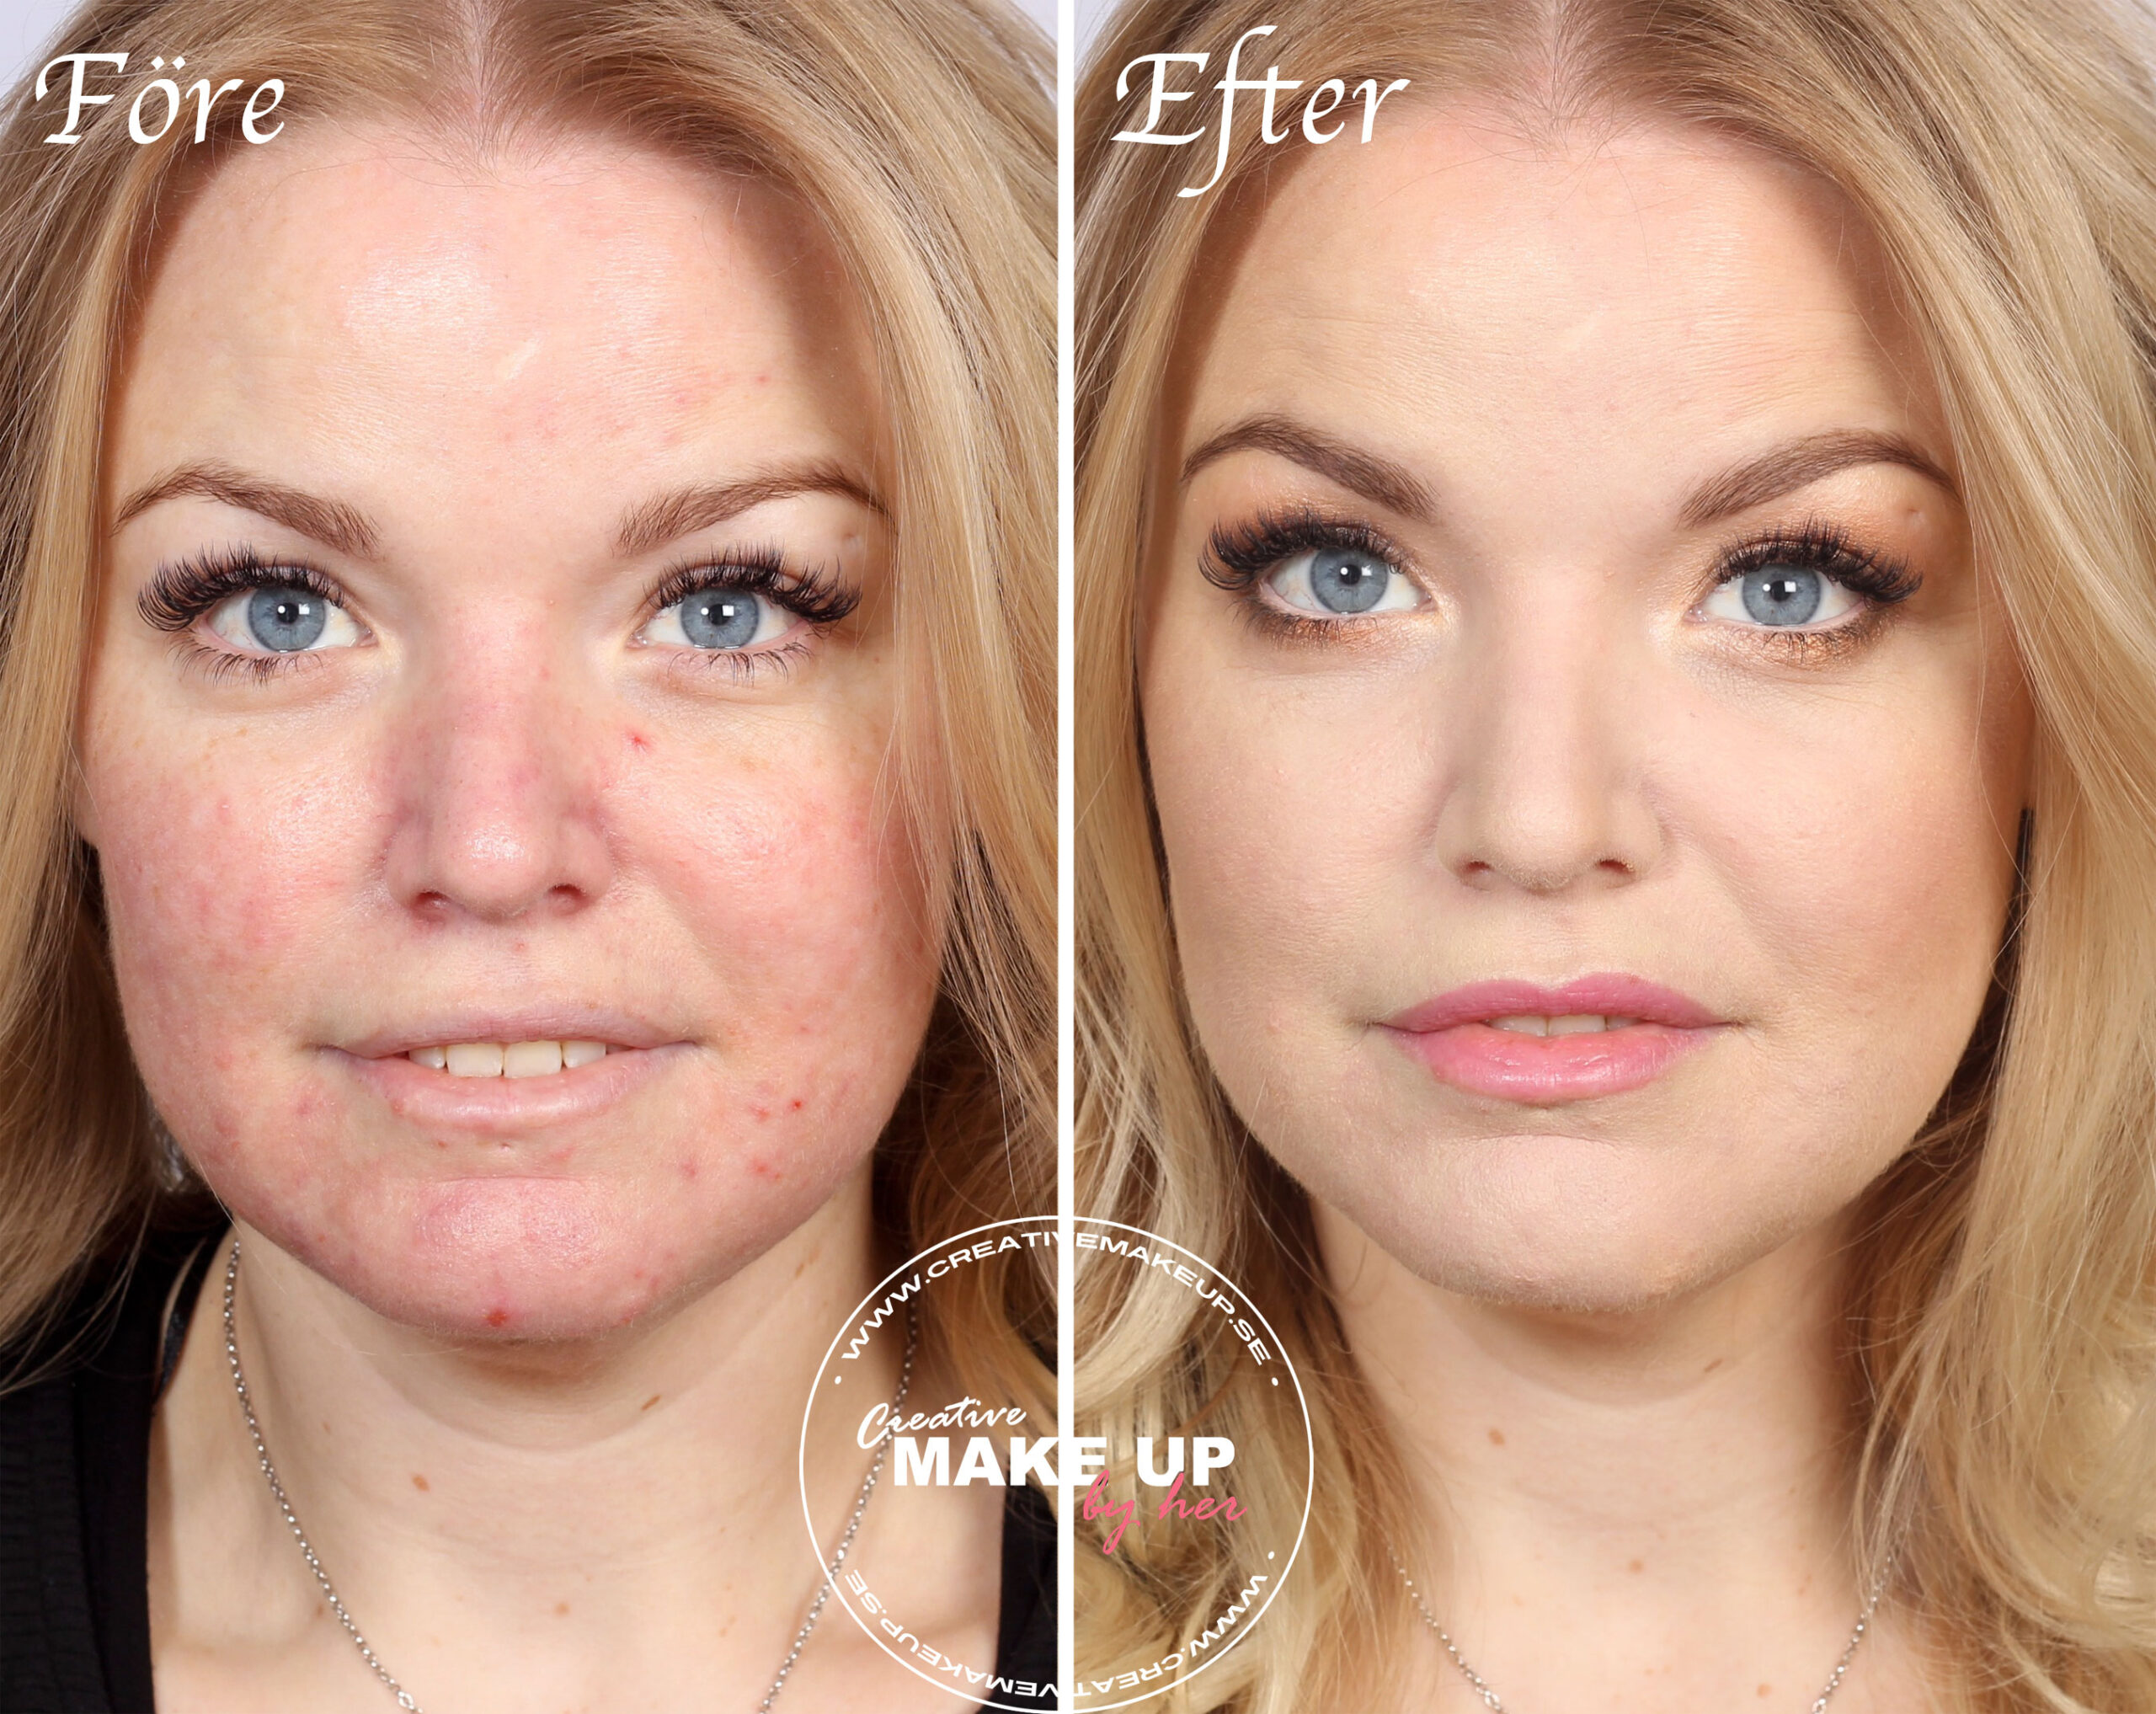 rosacea makeup before after